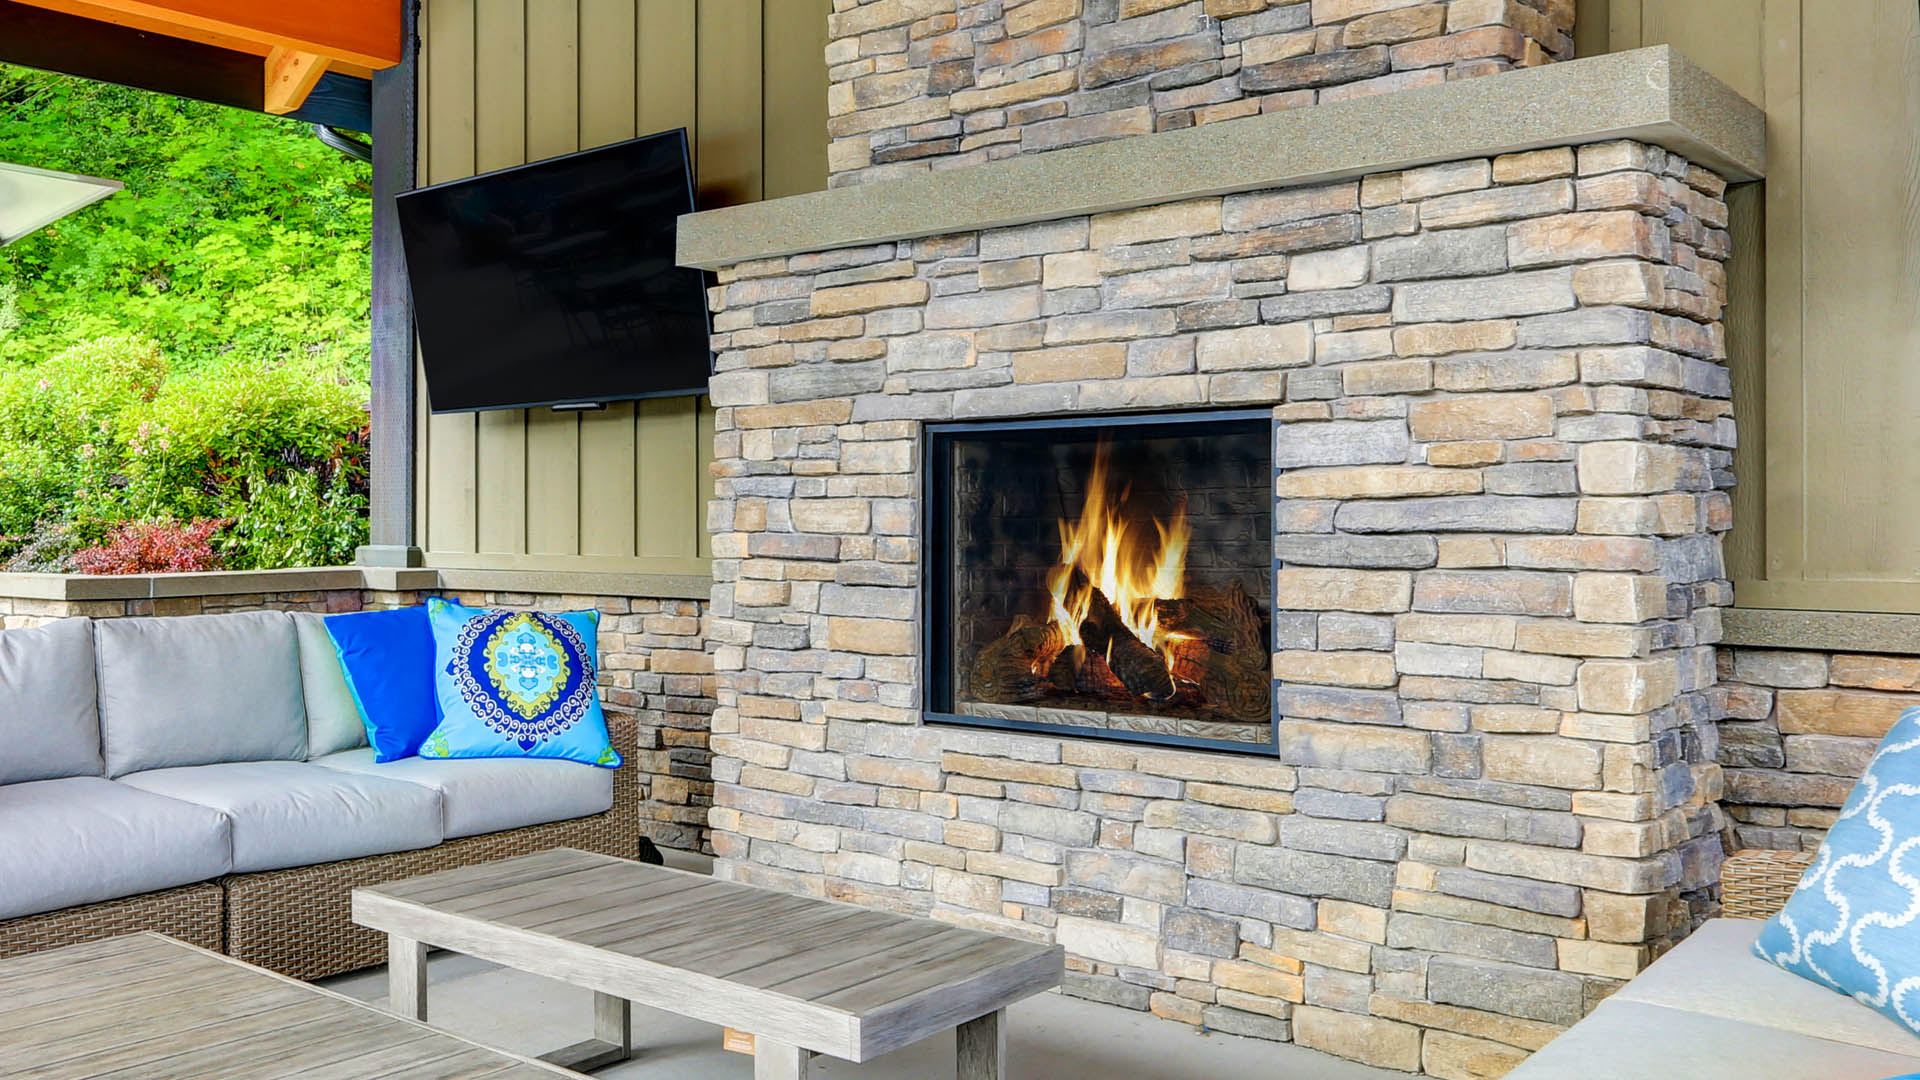 Outdoor fireplace and living areas.